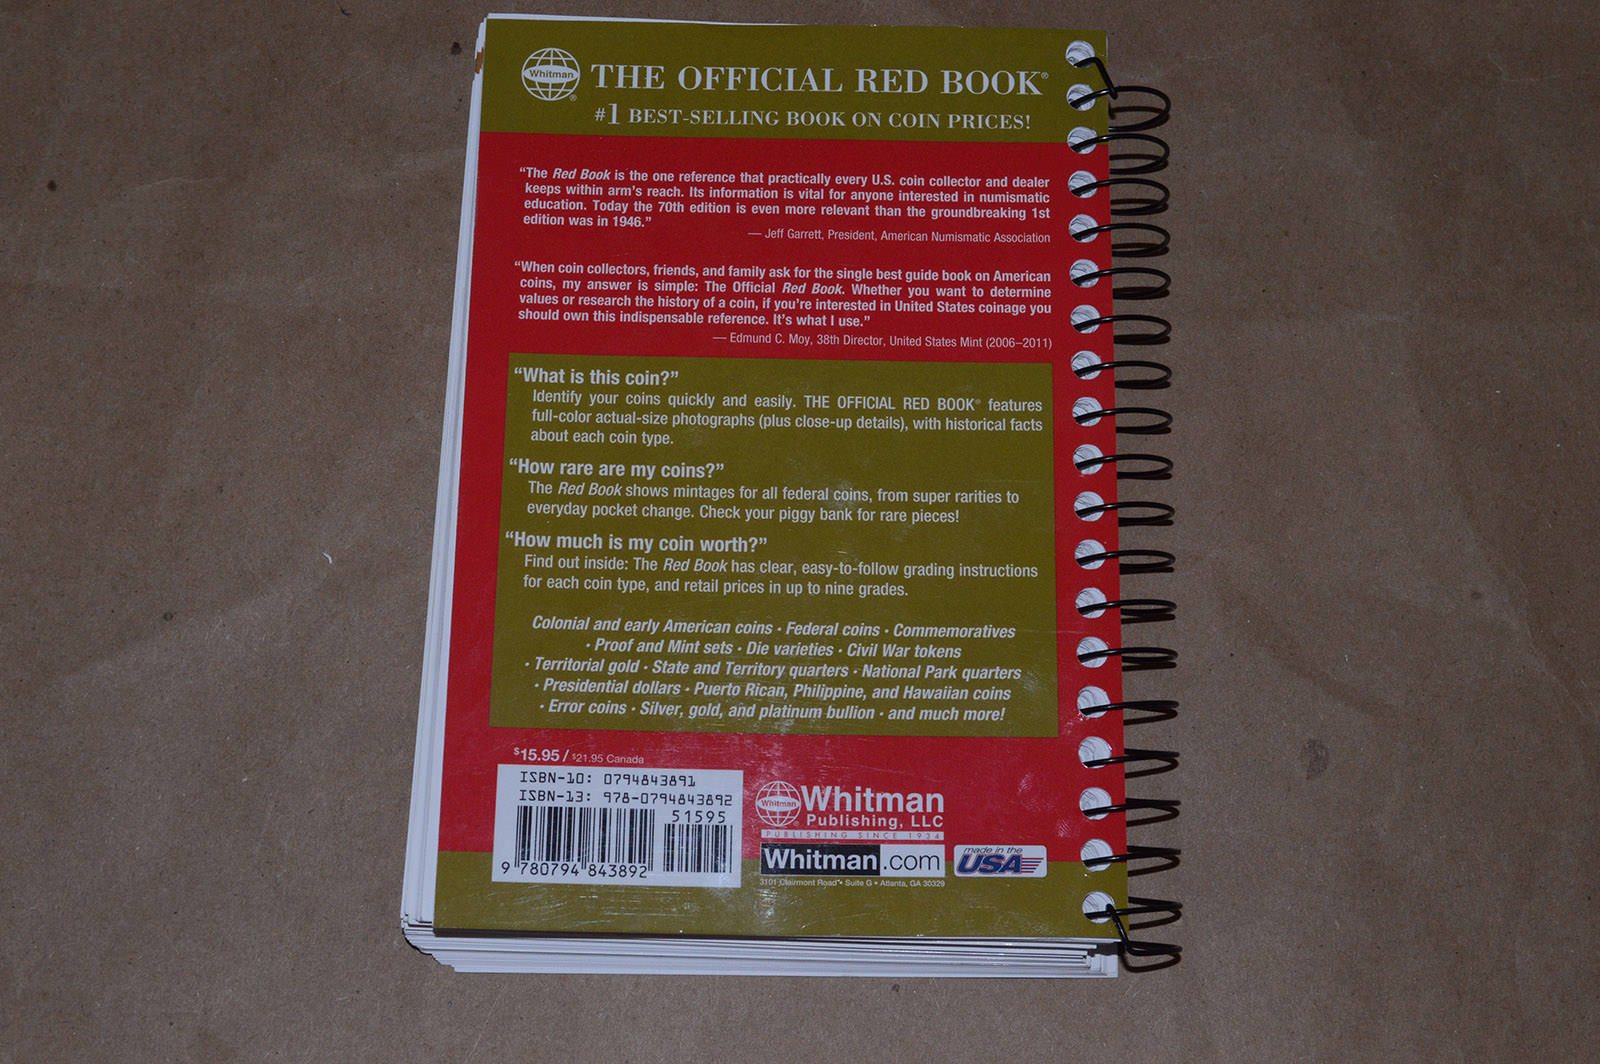 2017 United States Coins Red Book | Property Room